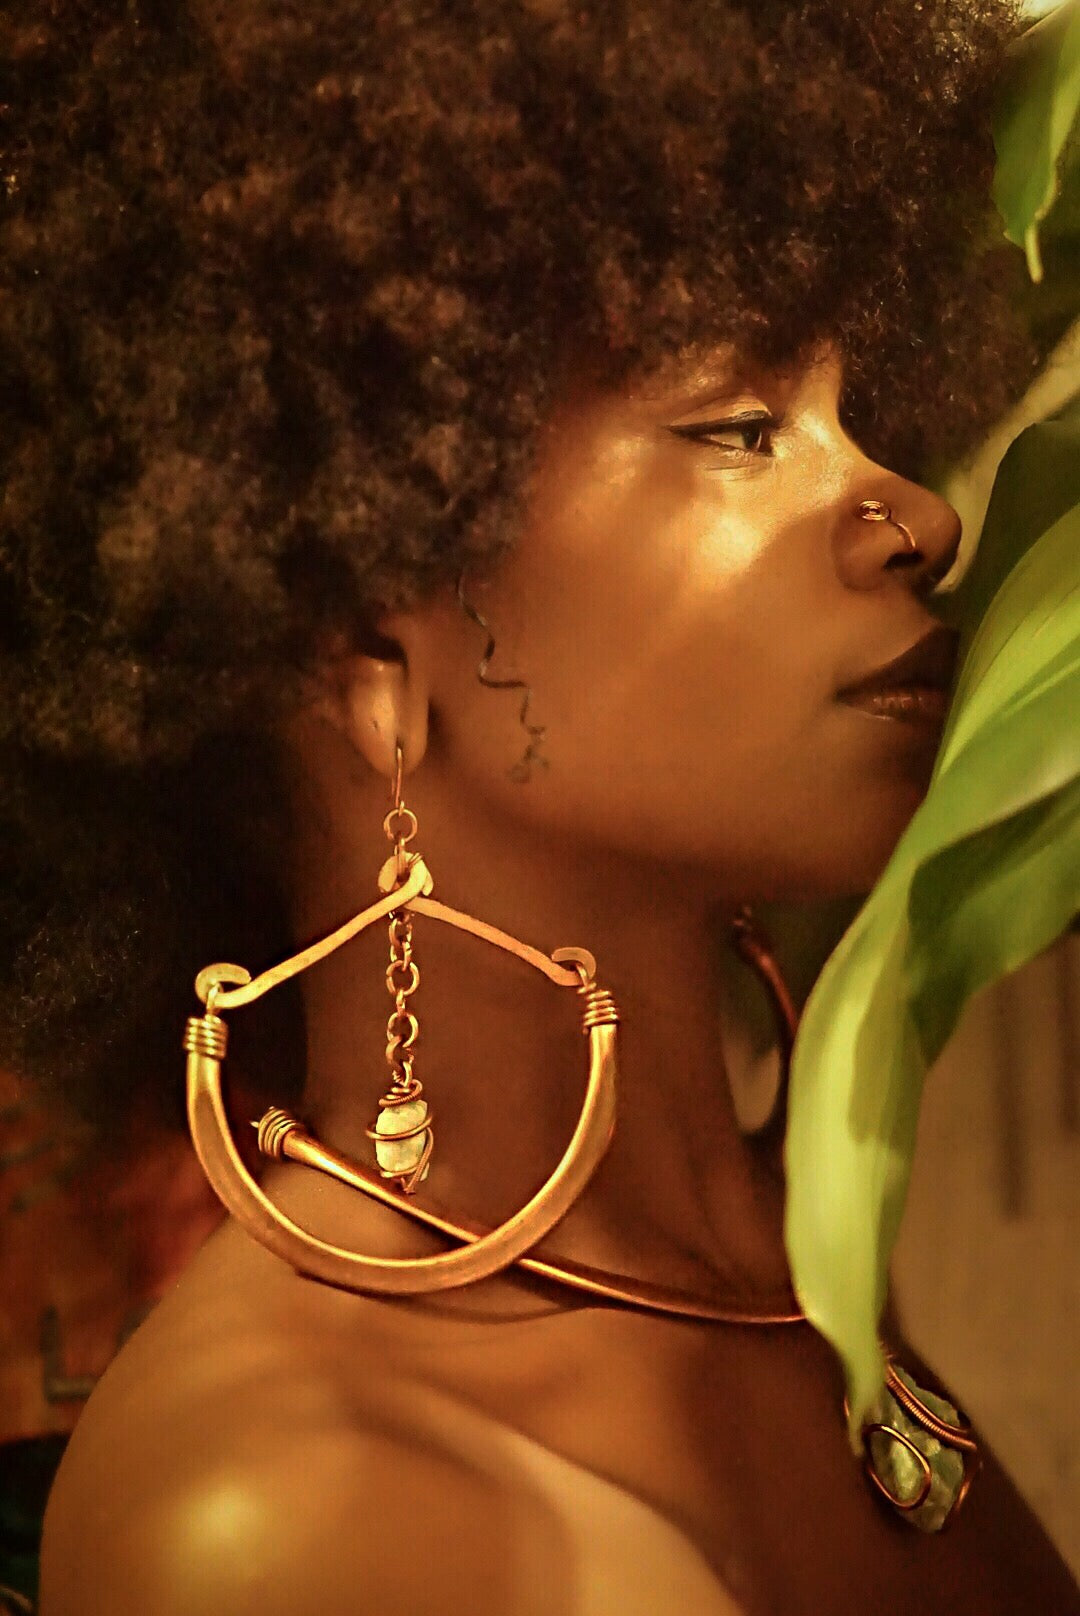 **Limited Edition** I HONOR MA'AT Earrings ONLY